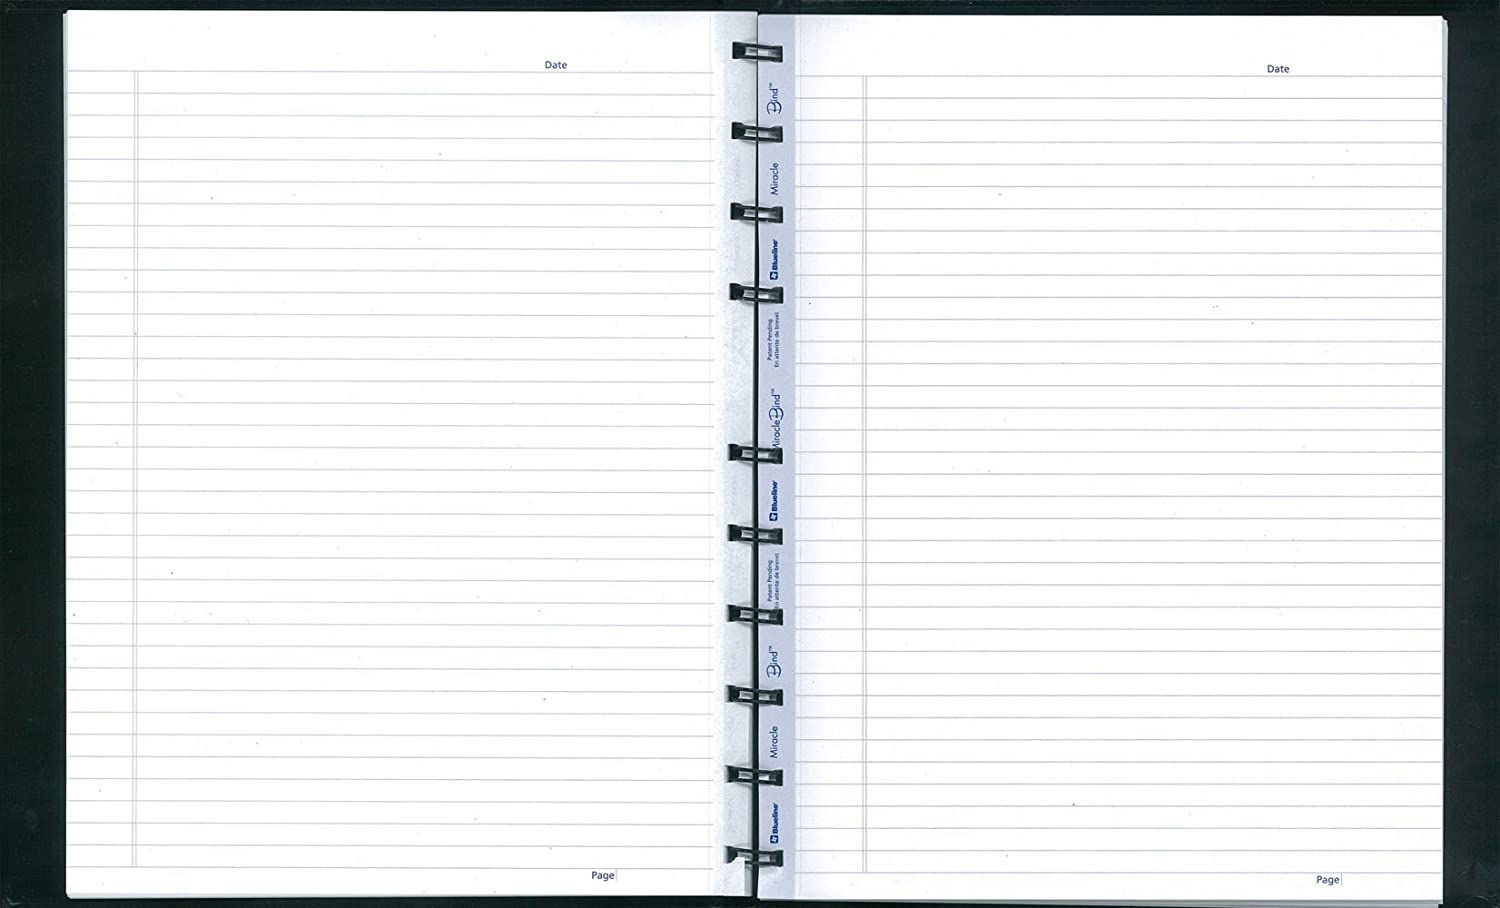 Blueline MiracleBind Notebook, Black, 9.25 x 7.25 inches, 150 Pages (AF9150.44)